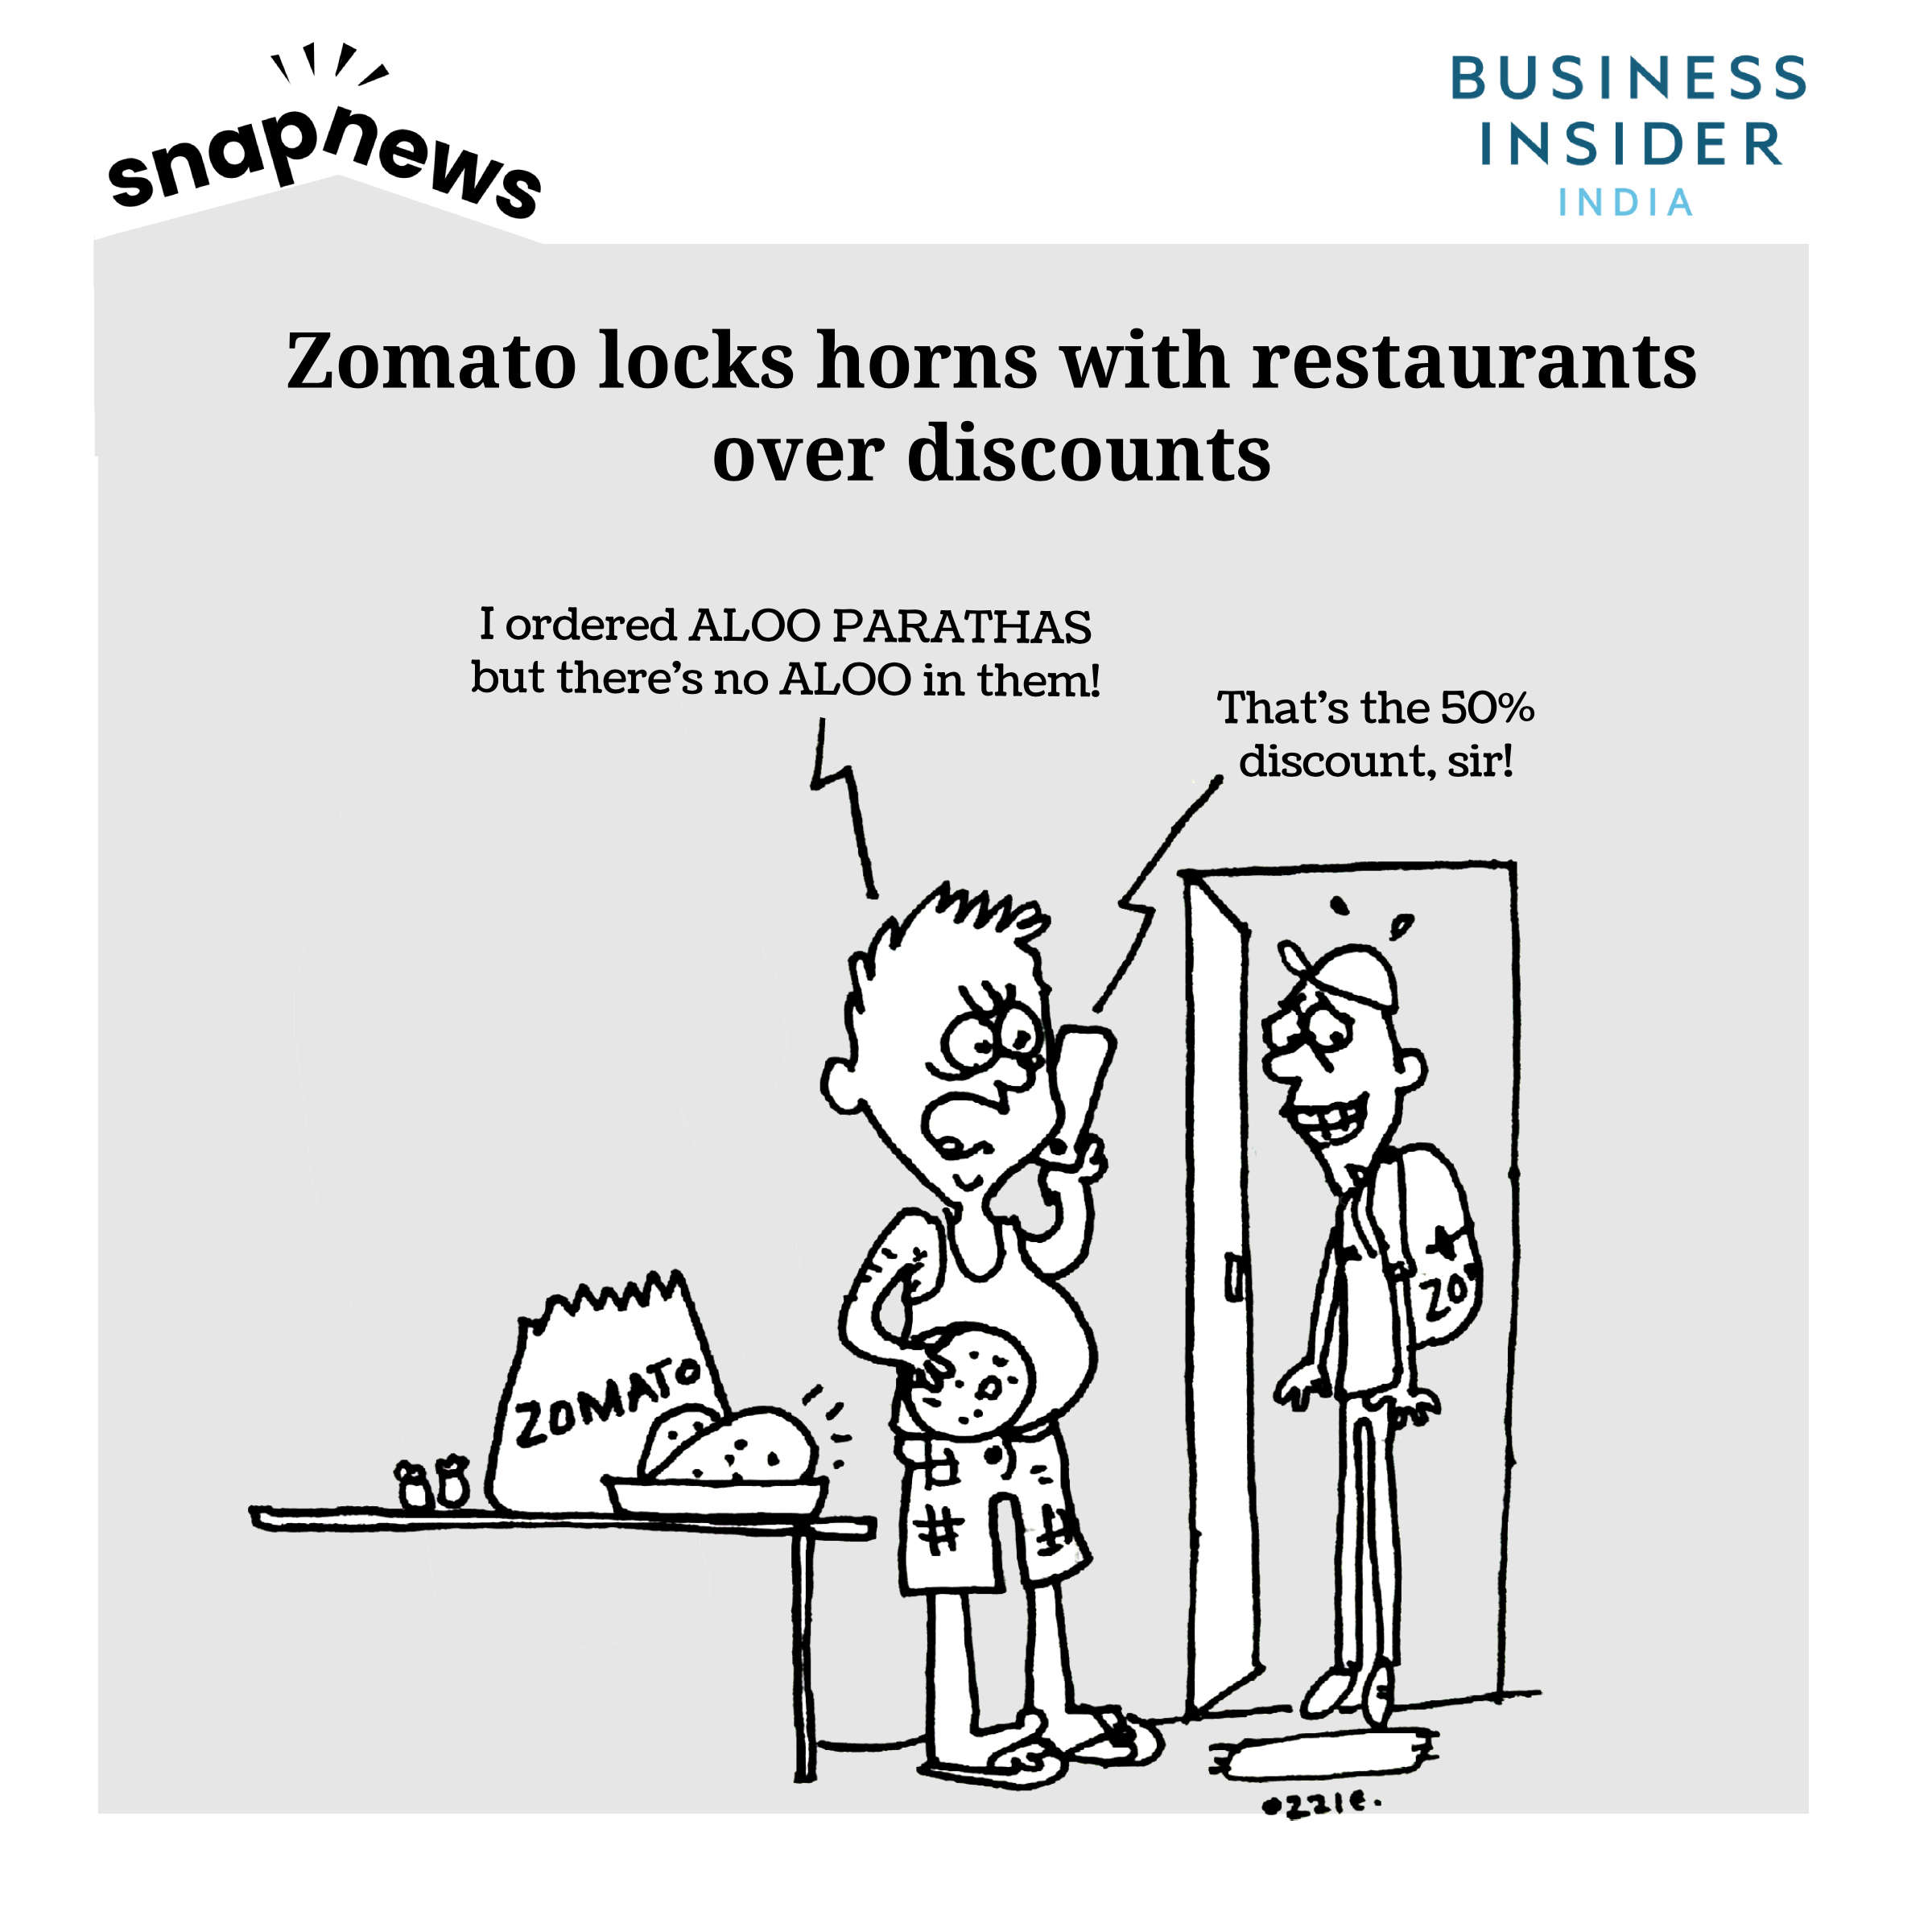 Zomato CEO Deepinder Goyal responds to the 'logout